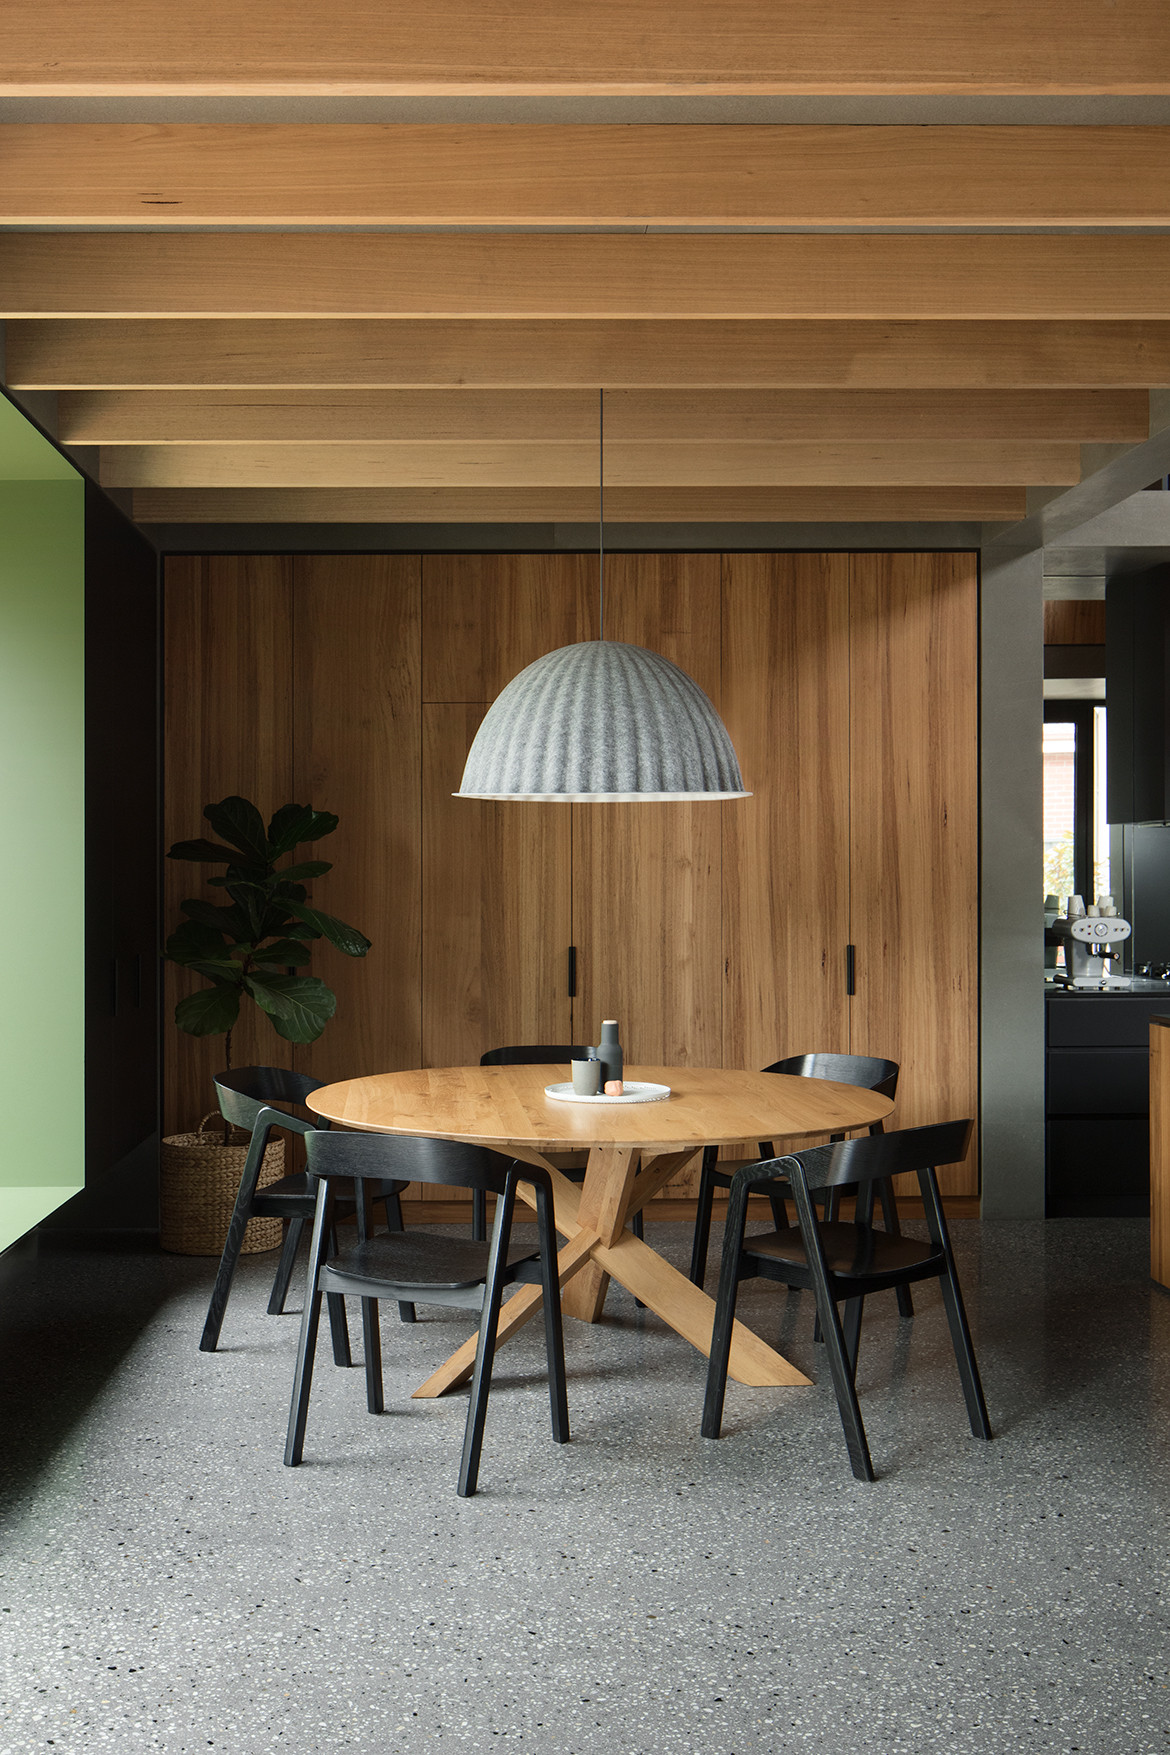 Dining table with black chairs